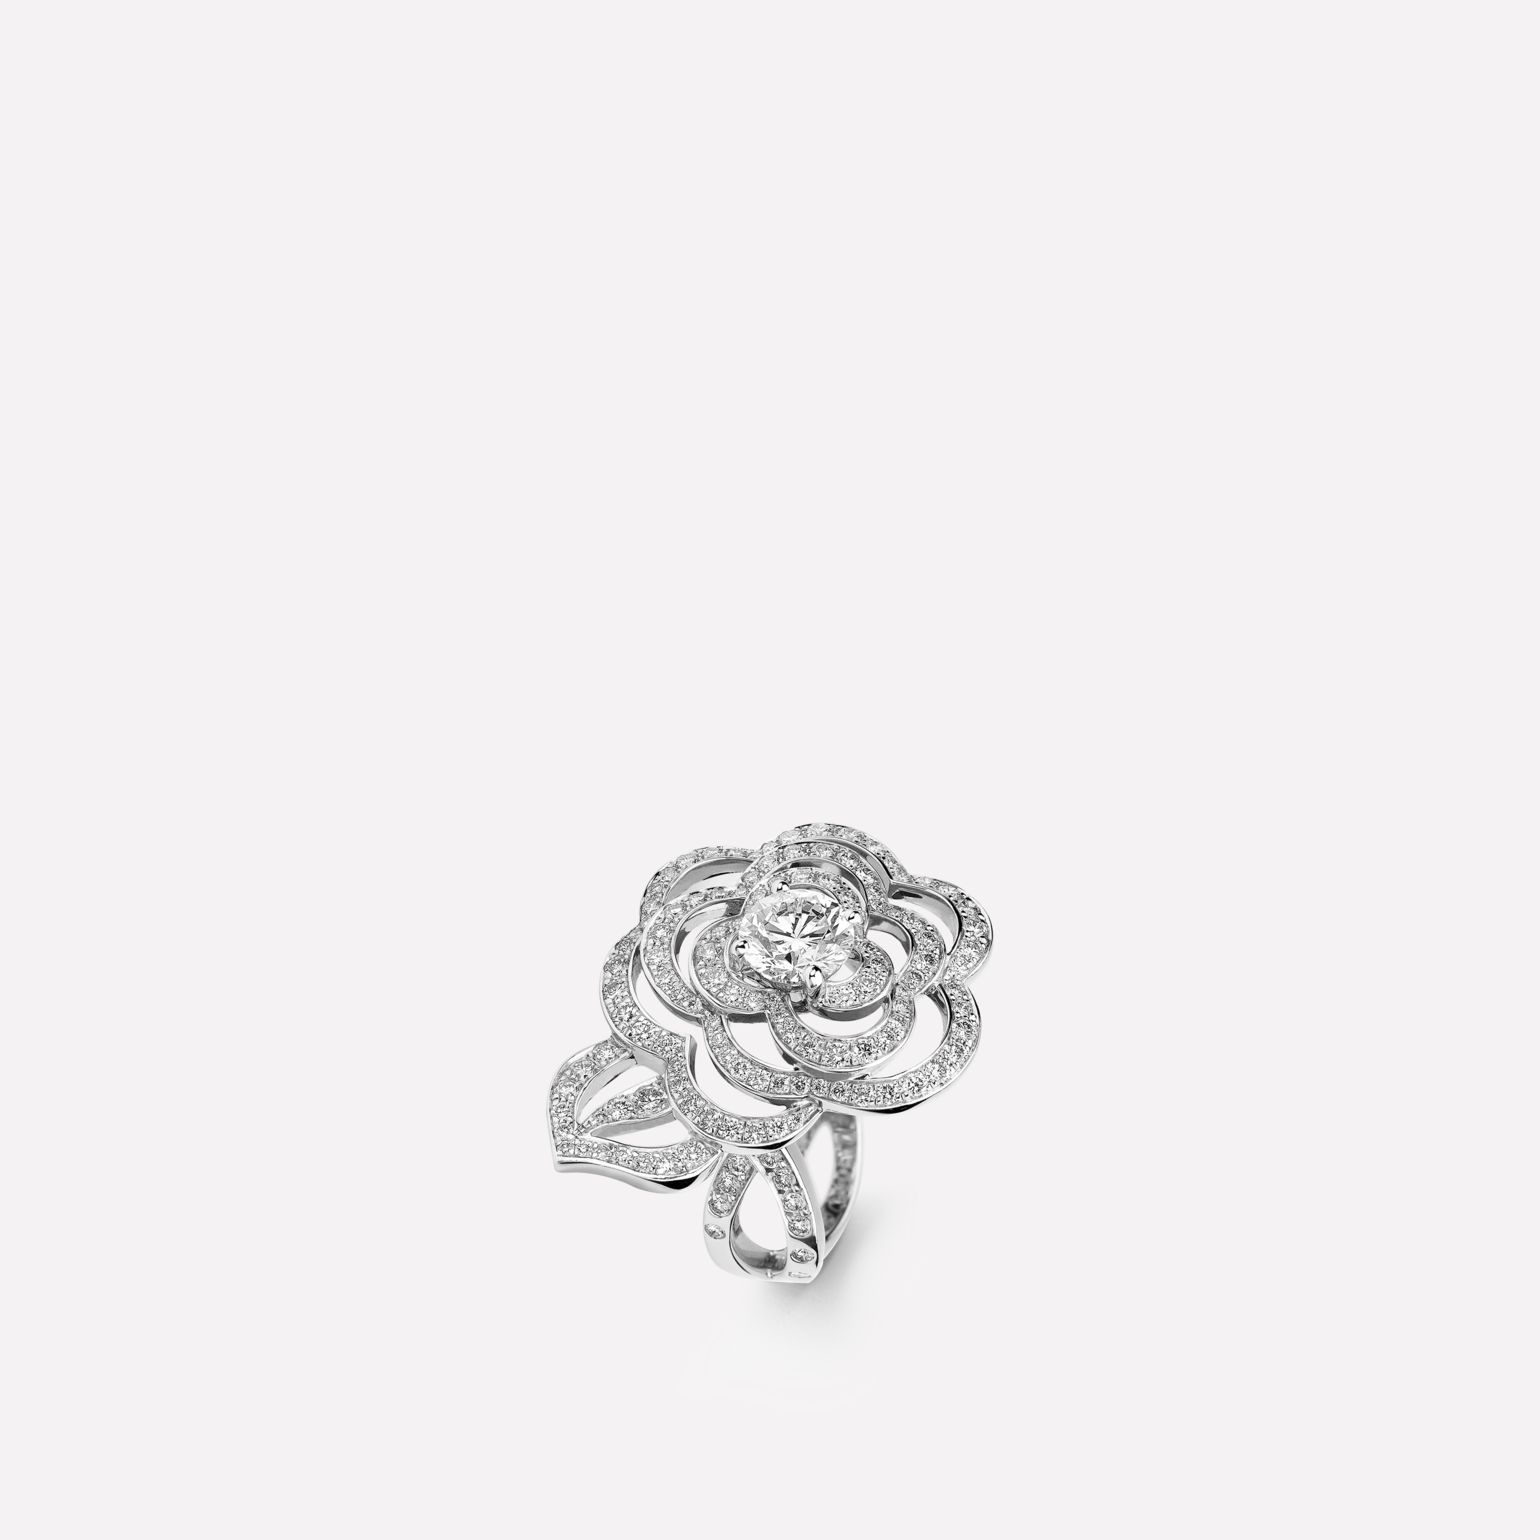 Fil de Camélia ring 18K white gold, center diamond, diamonds